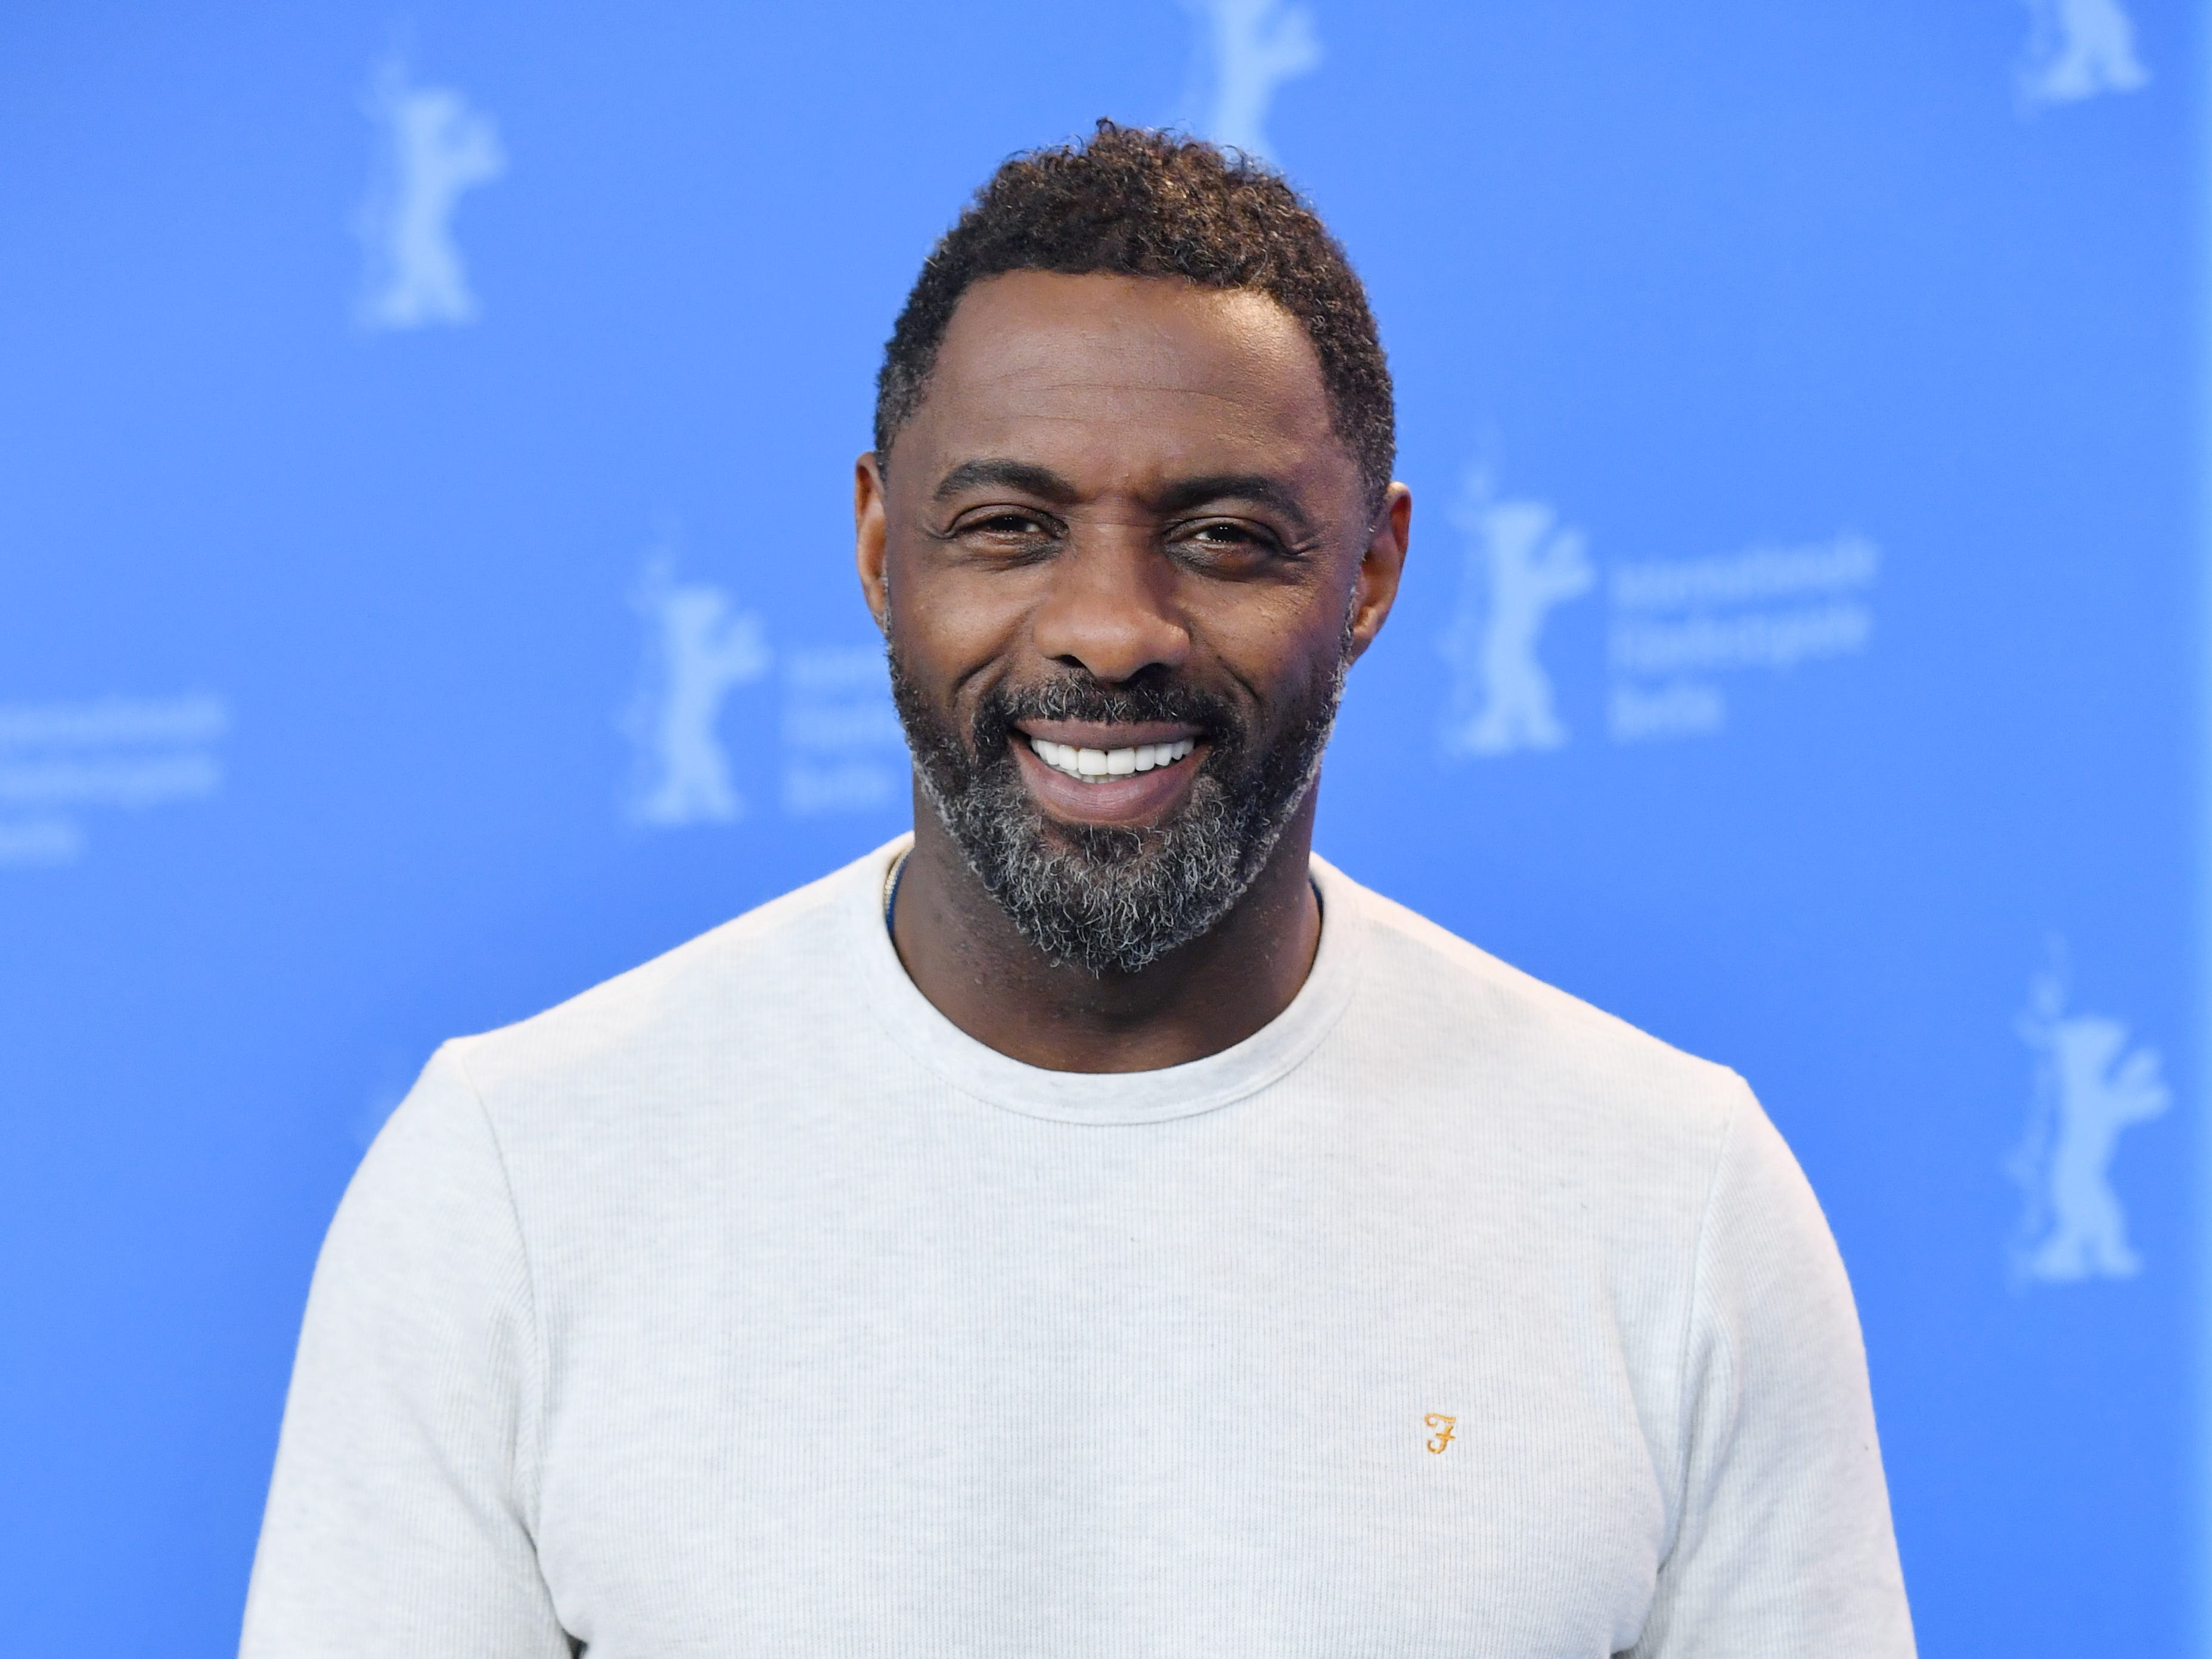 epa07145417 (FILE) - British director Idris Elba poses during a photocall for 'Yardie' at the 68th annual Berlin International Film Festival (Berlinale), in Berlin, Germany, 22 February 2018 (reissued 06 November 2018). According to media reports, Idris Elba has been named Sexiest Man Alive 2018 by People's magazine.  EPA-EFE/SASCHA STEINBACH *** Local Caption *** 54146576 ORG XMIT: BER723